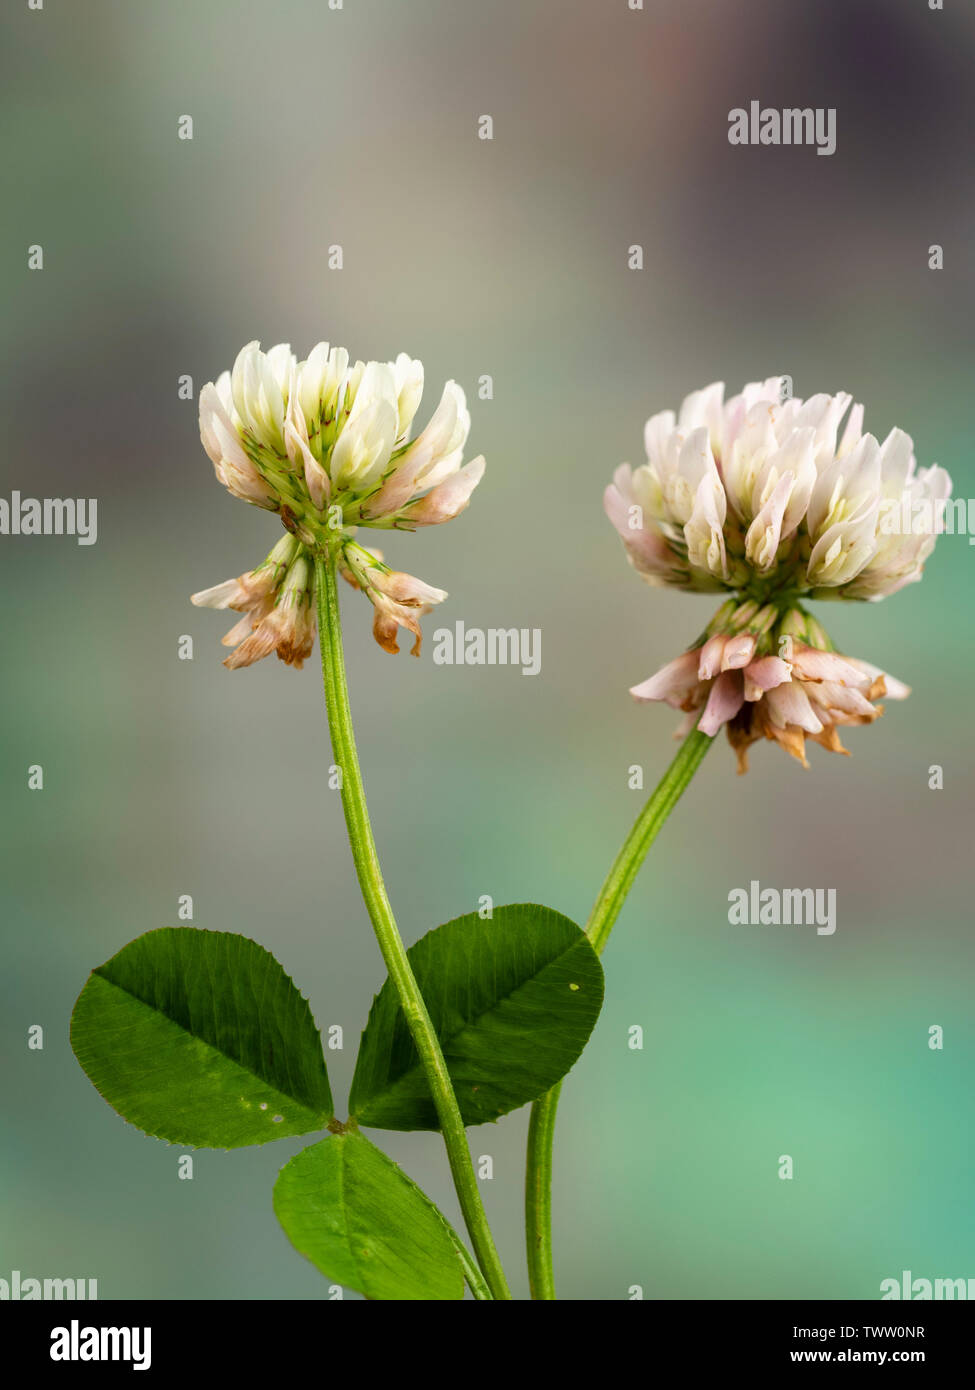 Weed Lawn Stock Photos & Weed Lawn Stock Images - Alamy